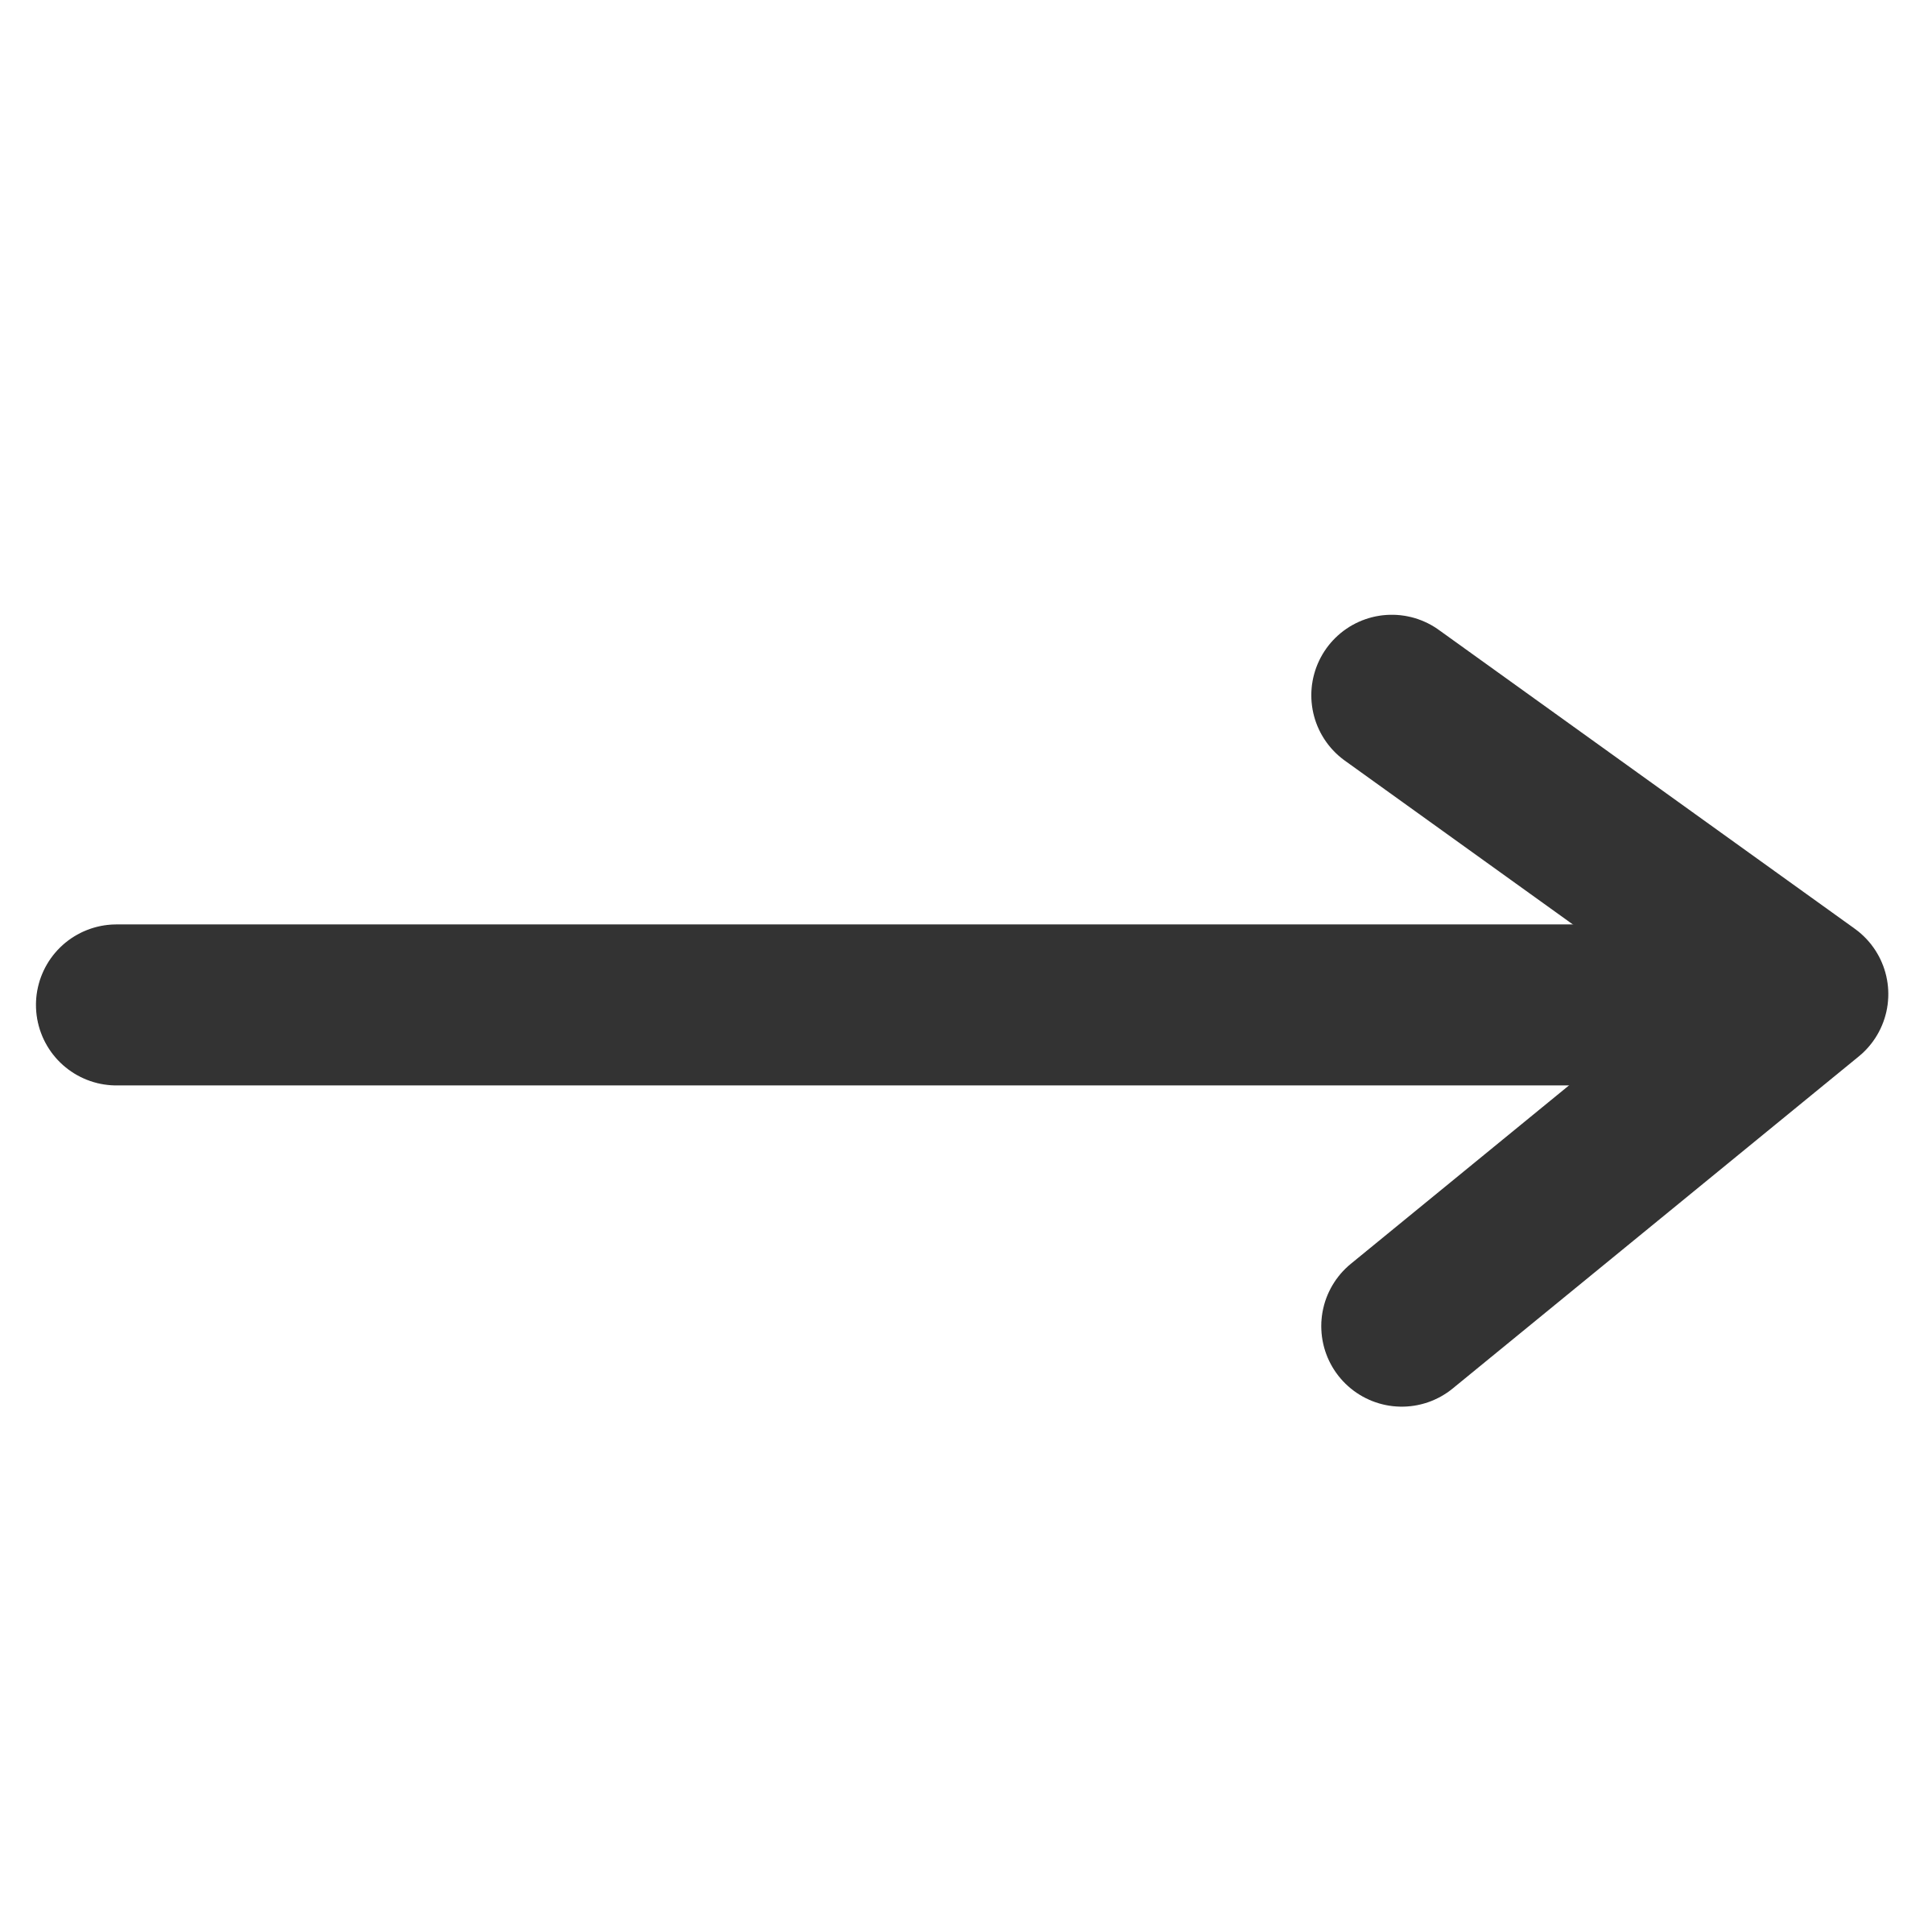 Line Art Arrow : Simple rounded arrow right transparent png stickpng